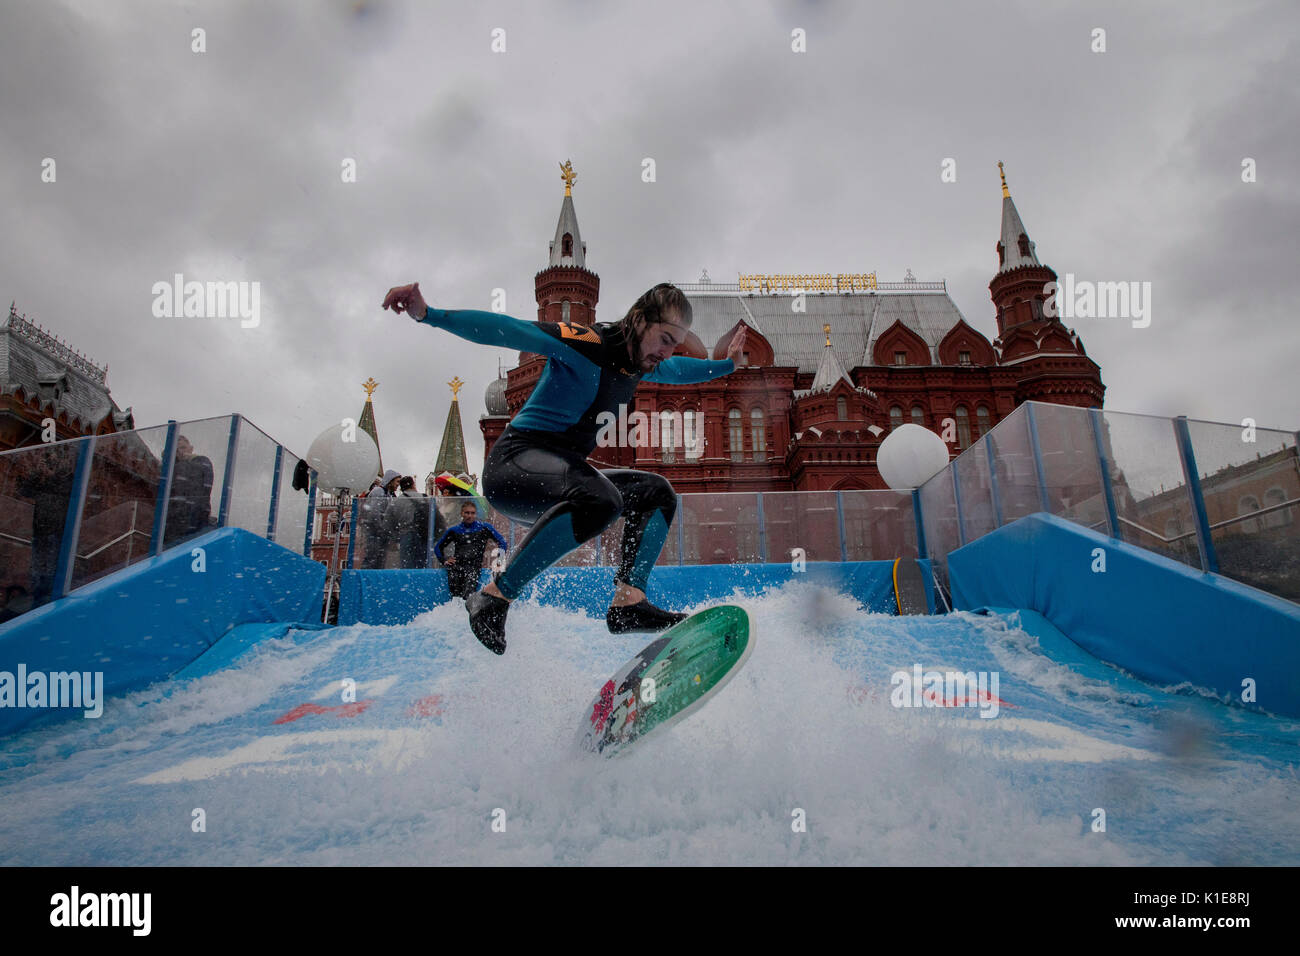 Moscow, Russia. 25th of August, 2017. A man jump on flowboard at front of the Red square in the center of Moscow, - Stock Image